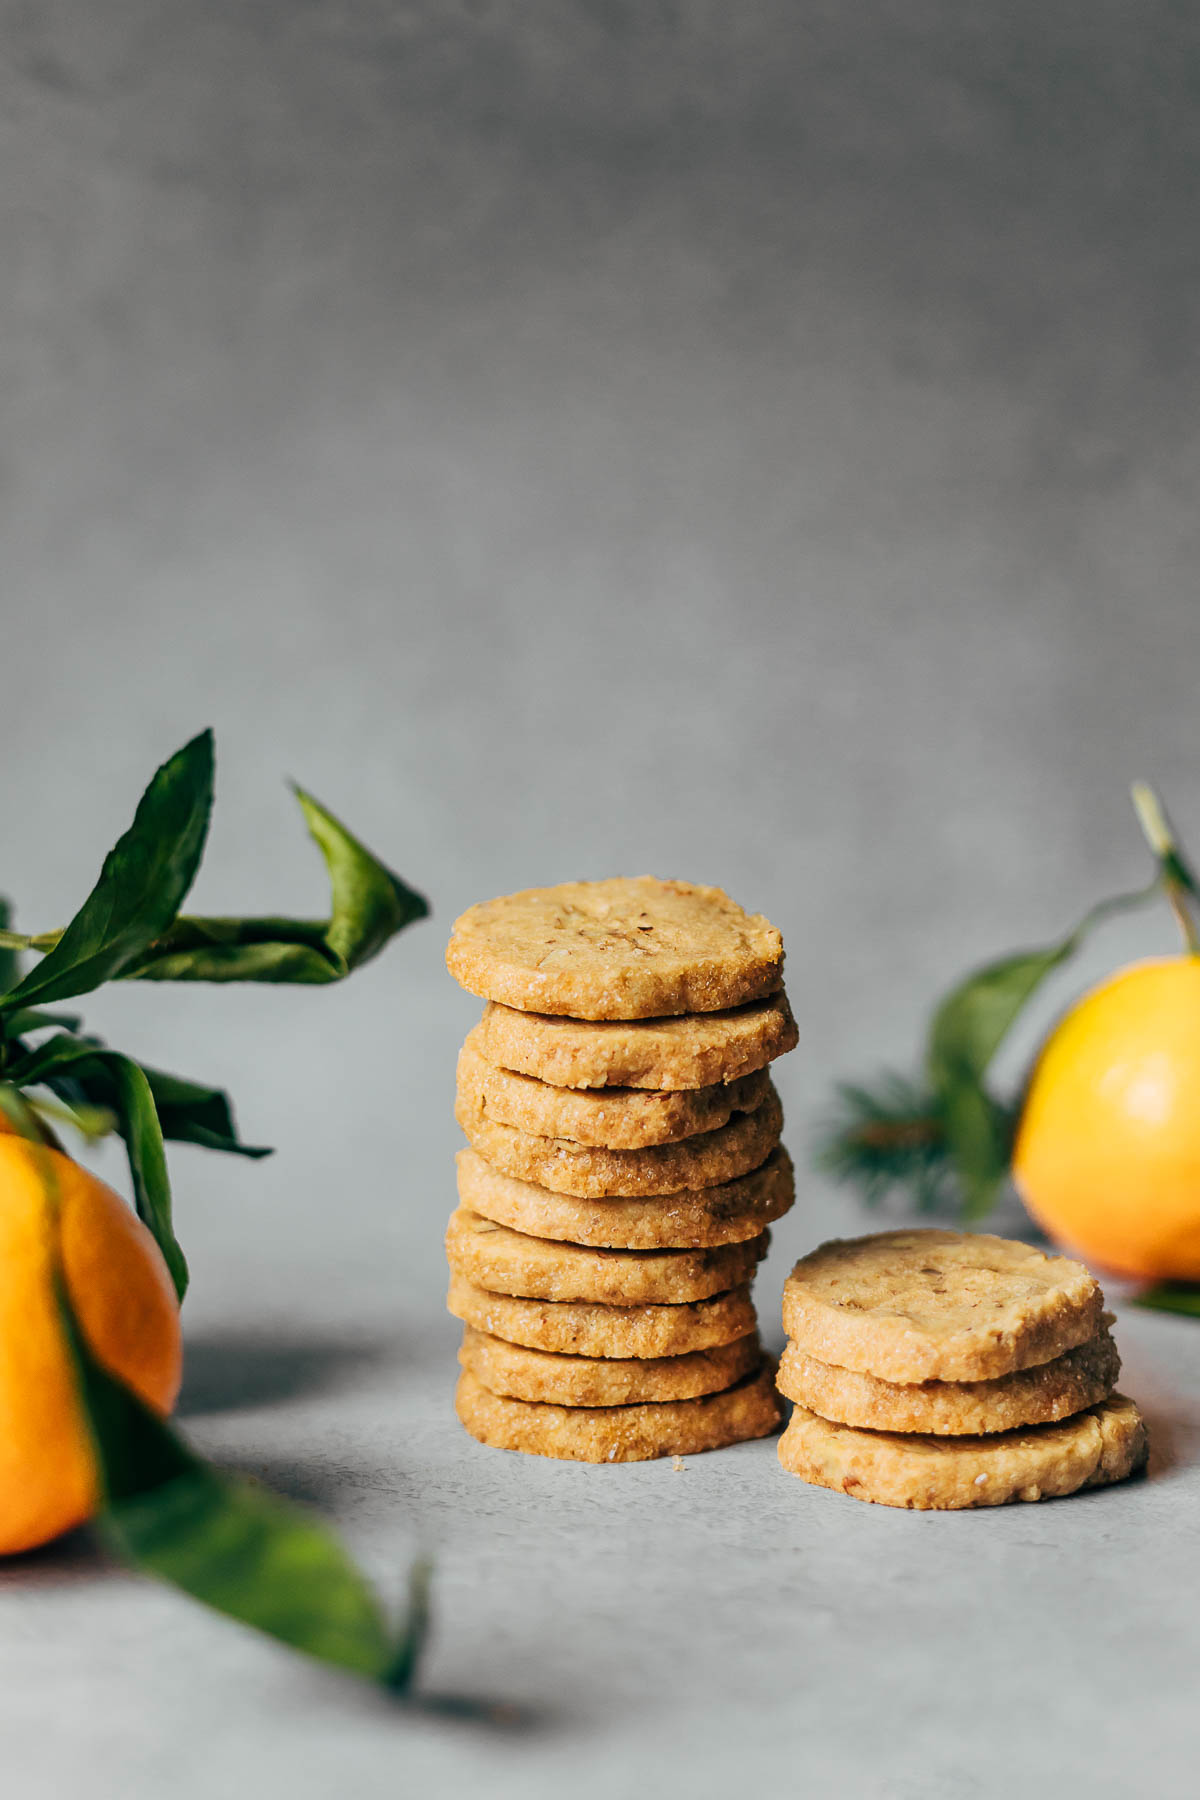 Two stacks of pecan shortbread cookies with clementines in the foreground and background.